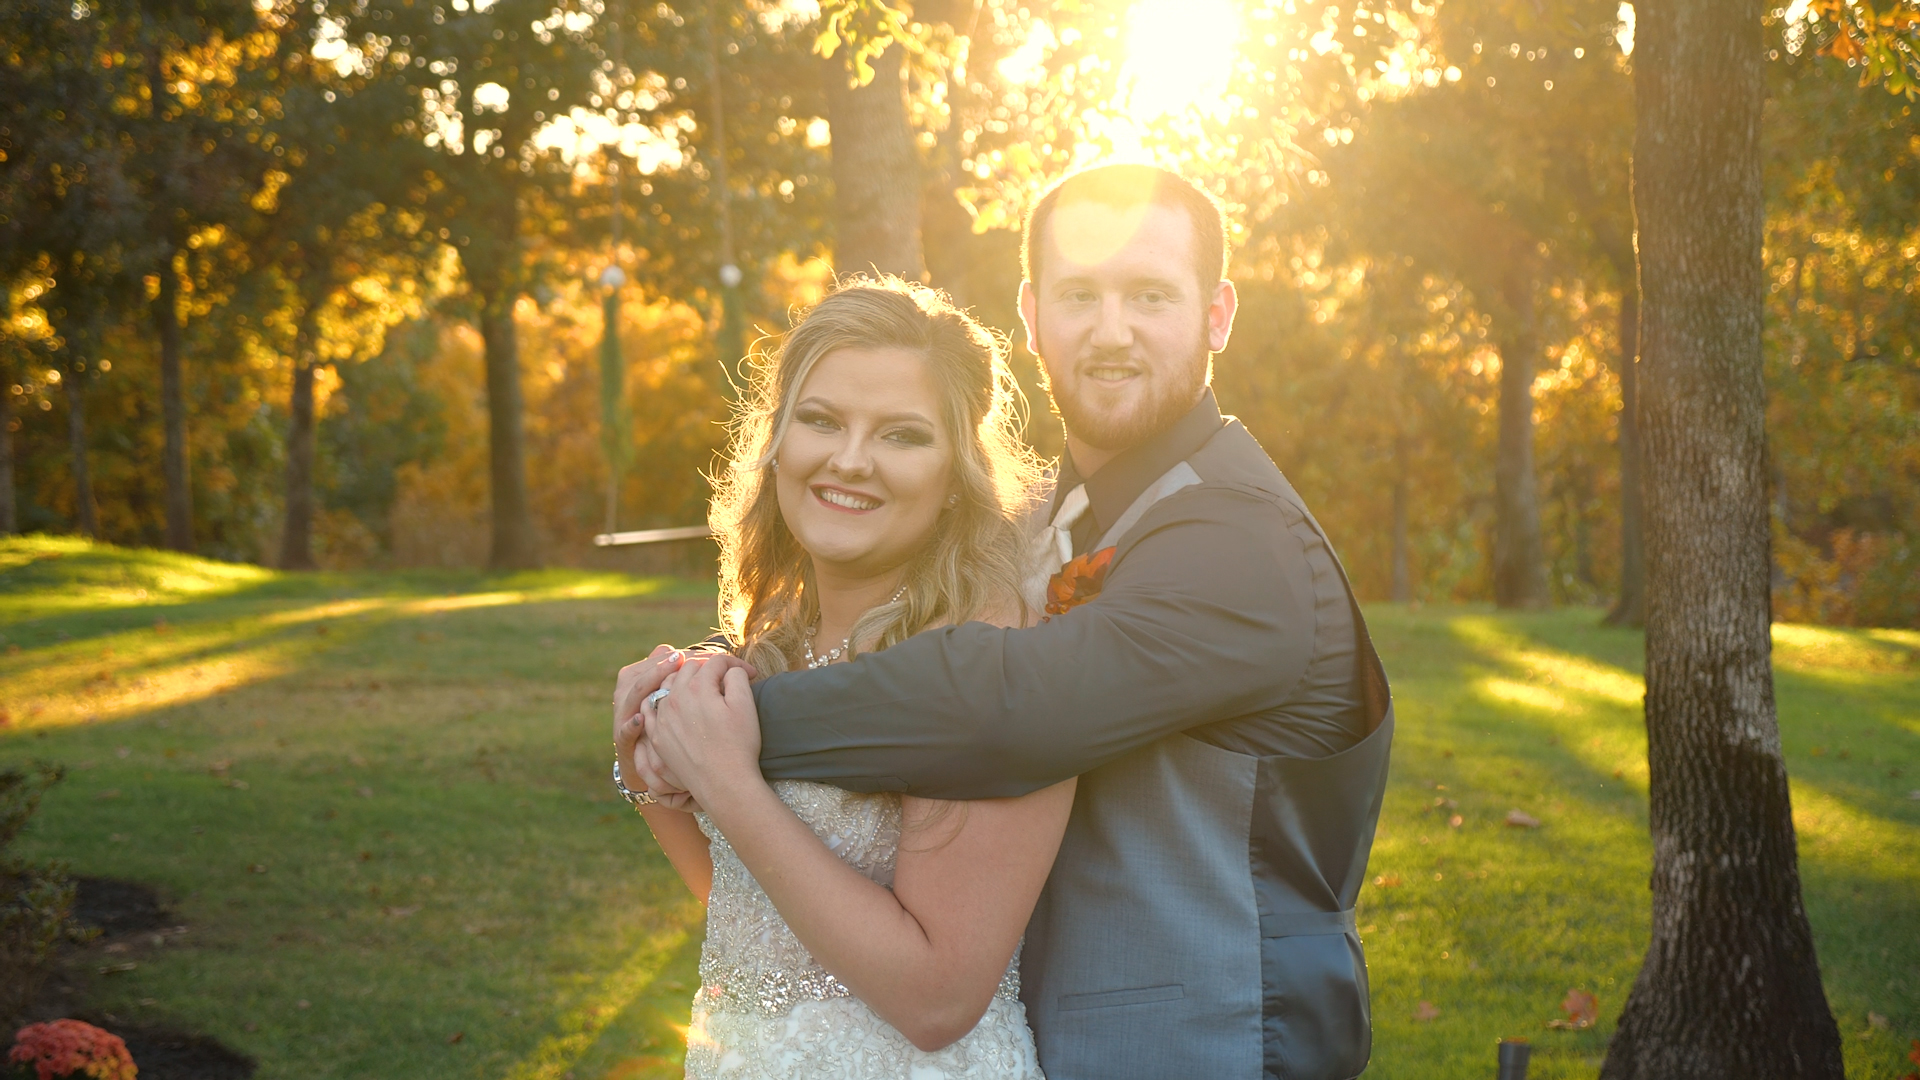 Kelsey + Jordan | Tulsa, Oklahoma | The Springs Event Venue